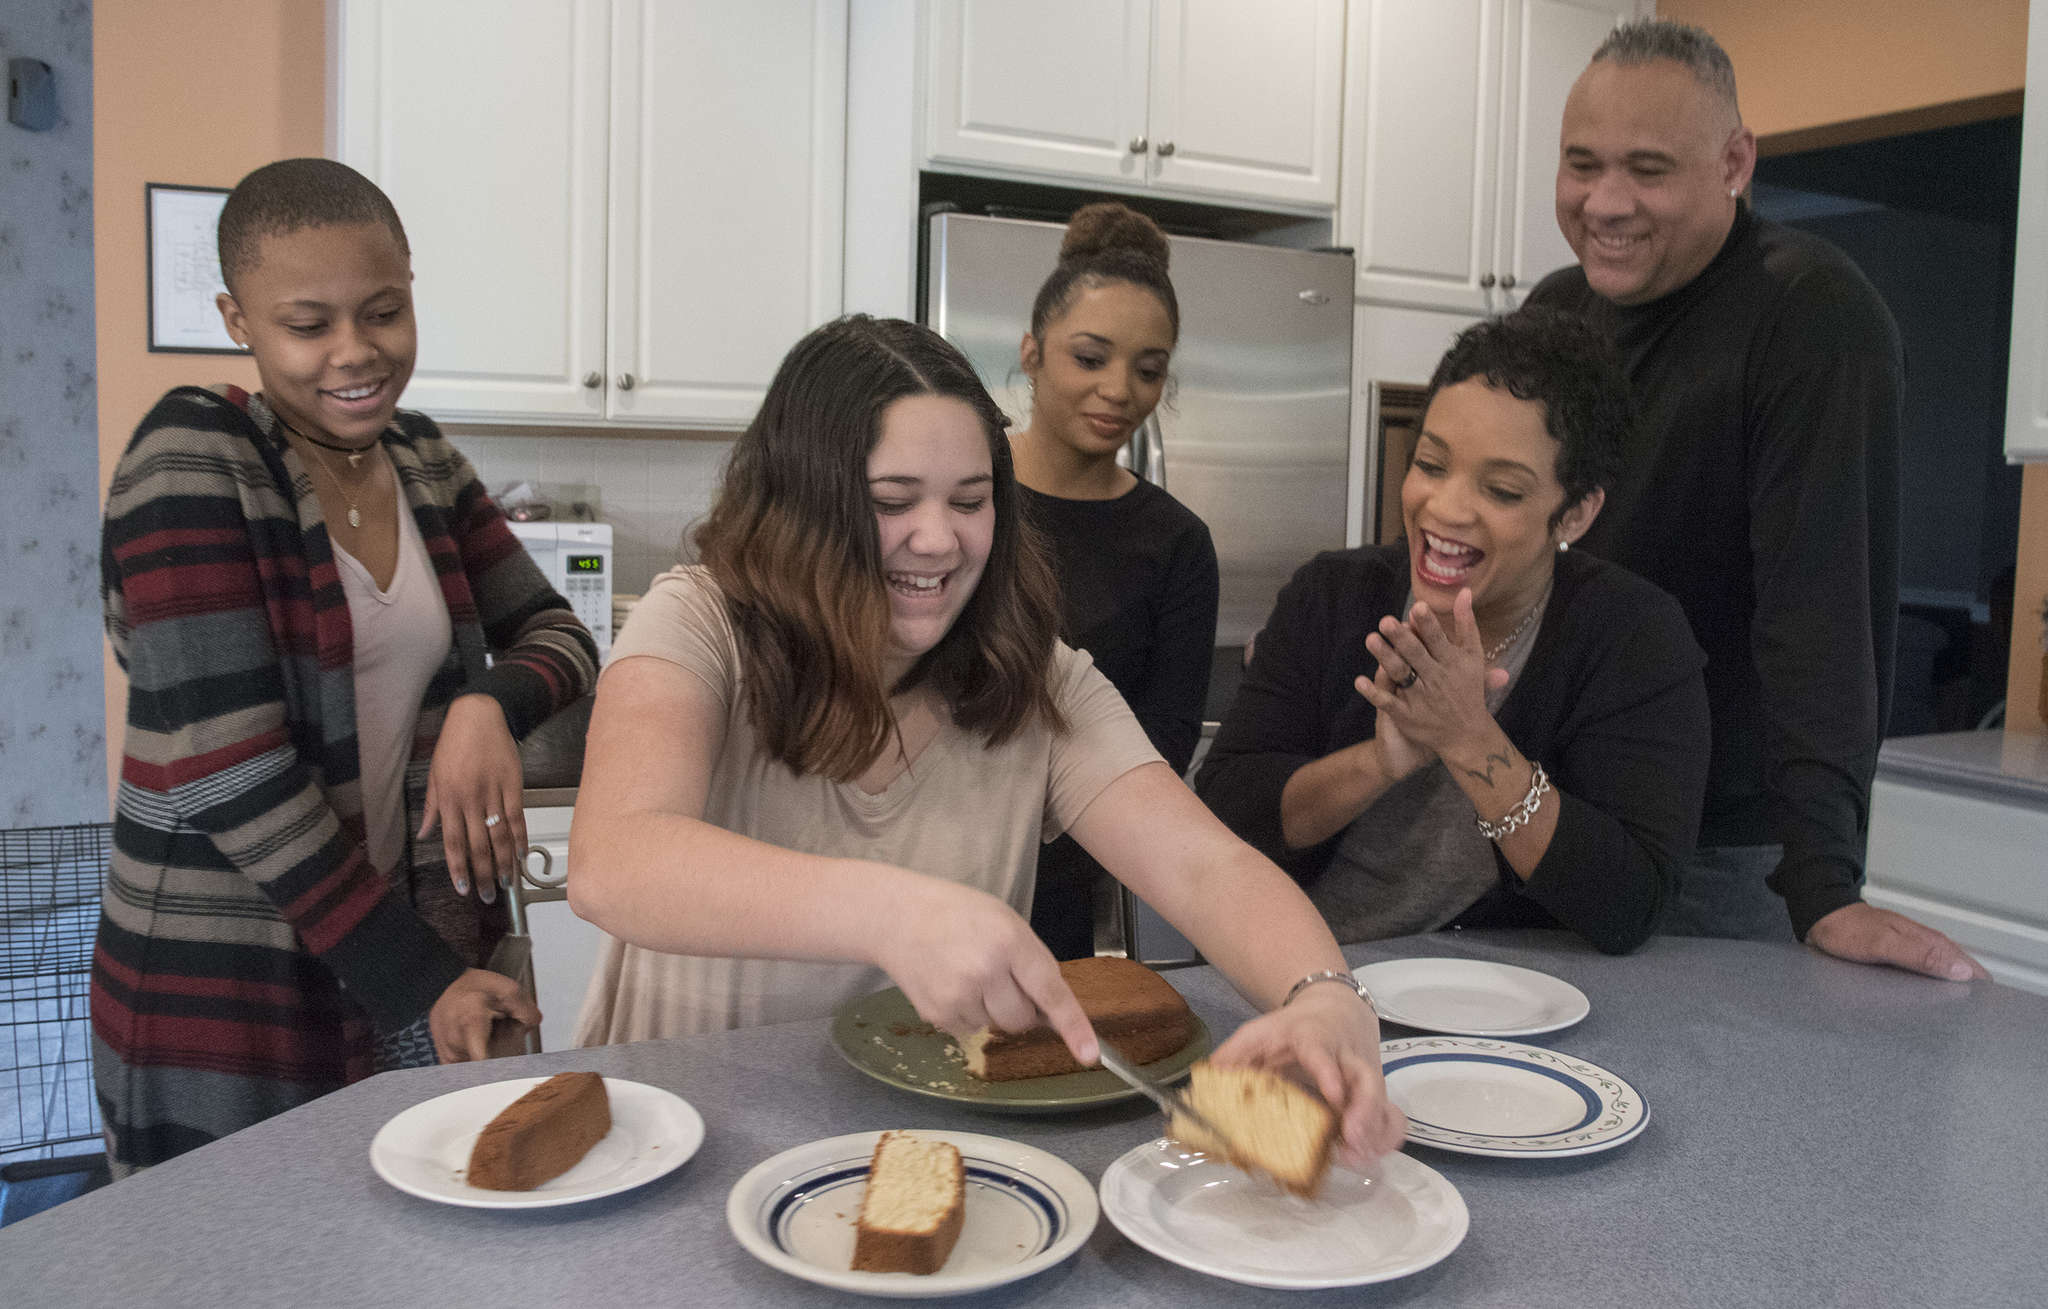 Audelia Crabbe cuts her cake on her 14th birthday with her adoptive family (from left) Nacera Wynn, Billie Walker, Valerie Crabbe and Larry Harris.